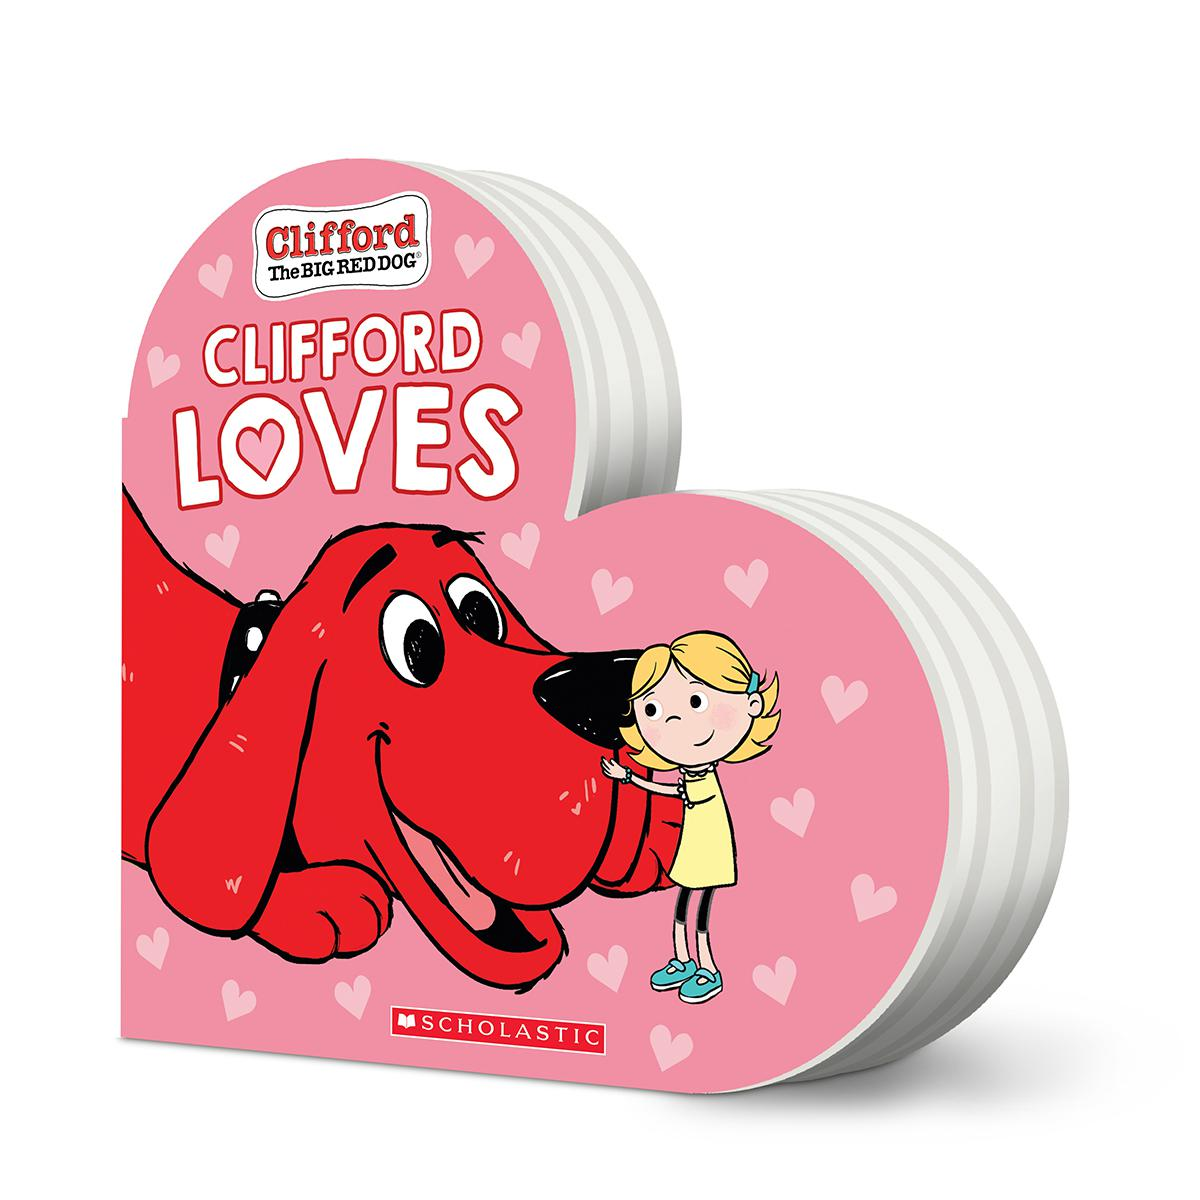 Clifford the Big Red Dog®: Clifford Loves